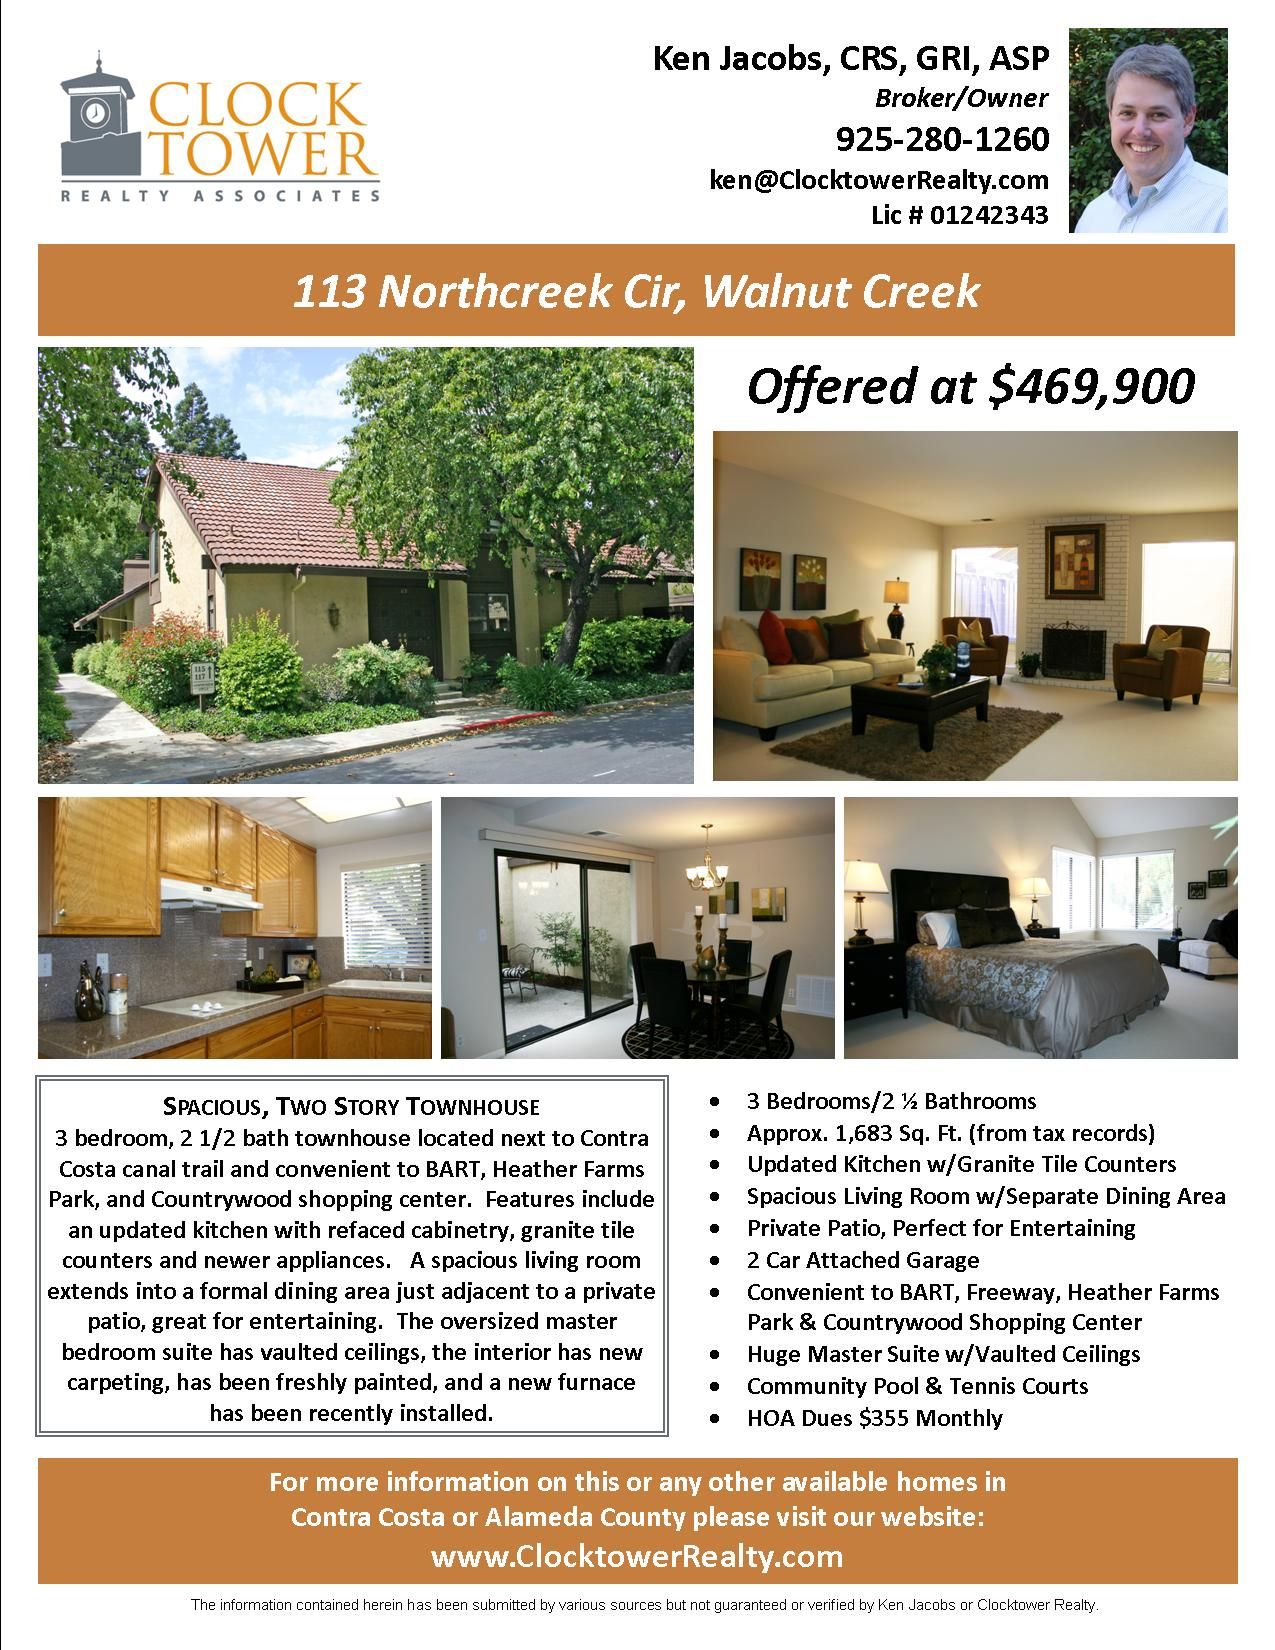 Home For Sale Brochure Awesome Flyers For Selling Houses  Marketingadvertising  Walnut Creek .